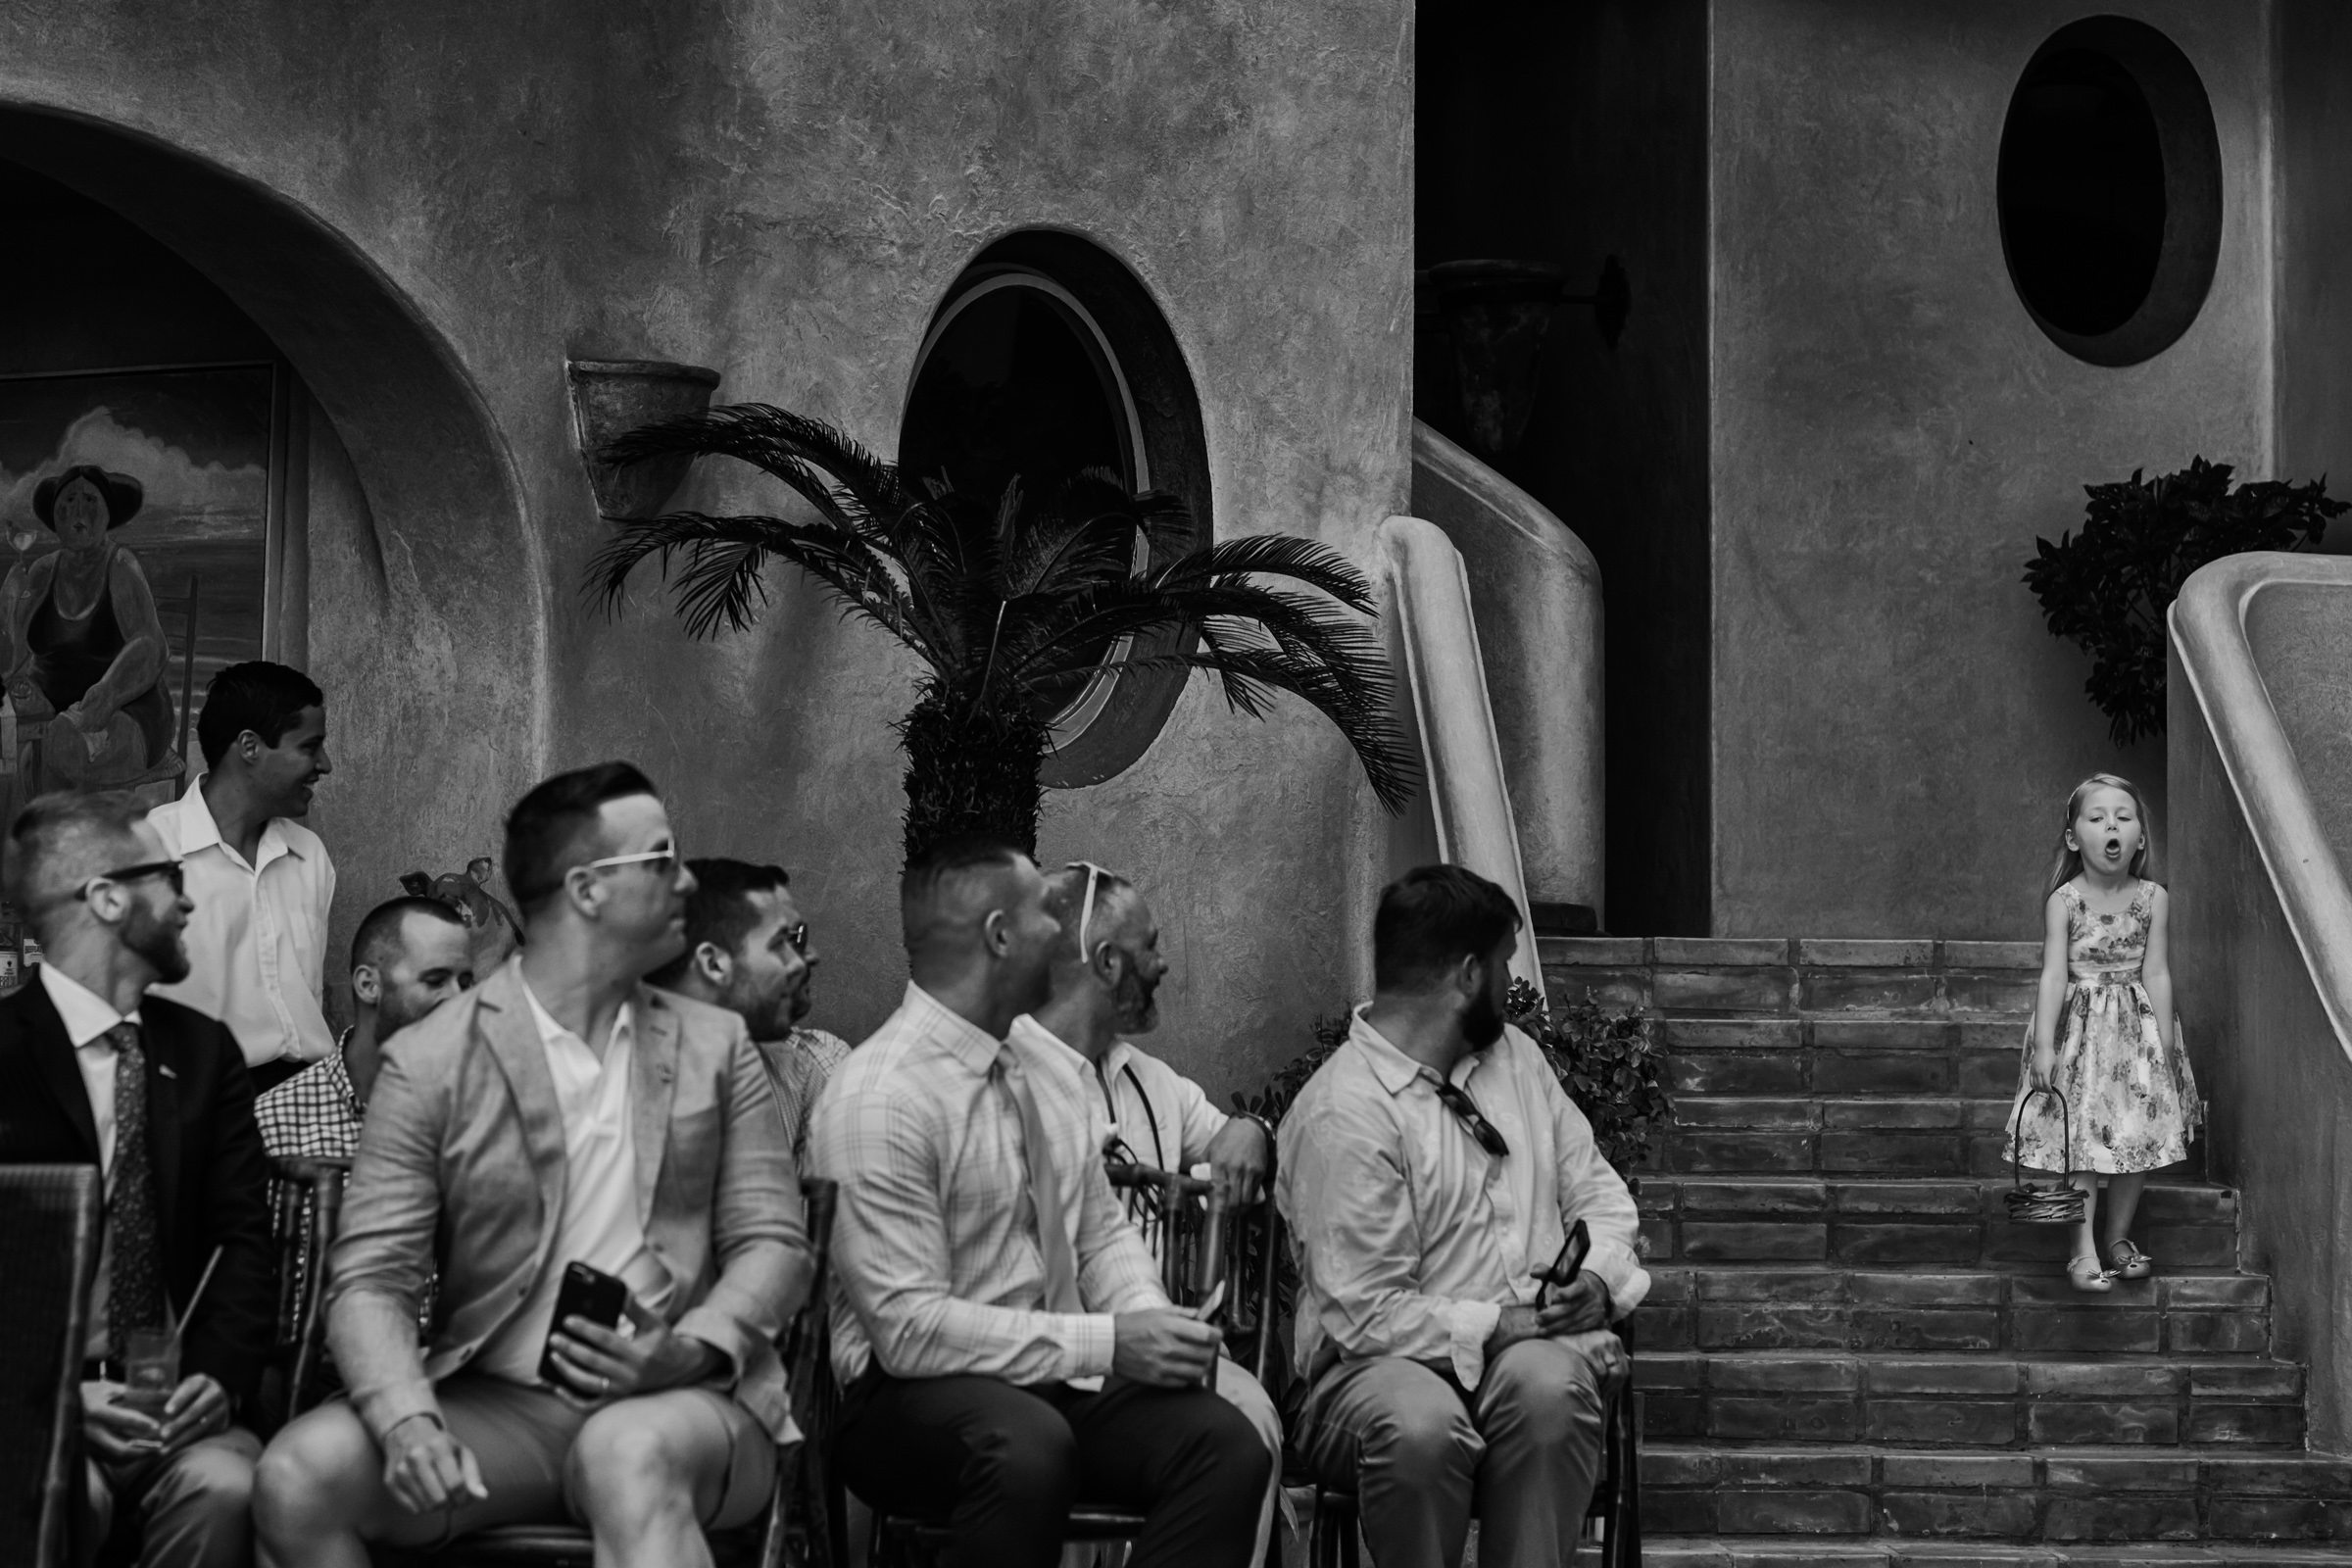 Guests turn to see little girl on stairs - photo by Chrisman Studios